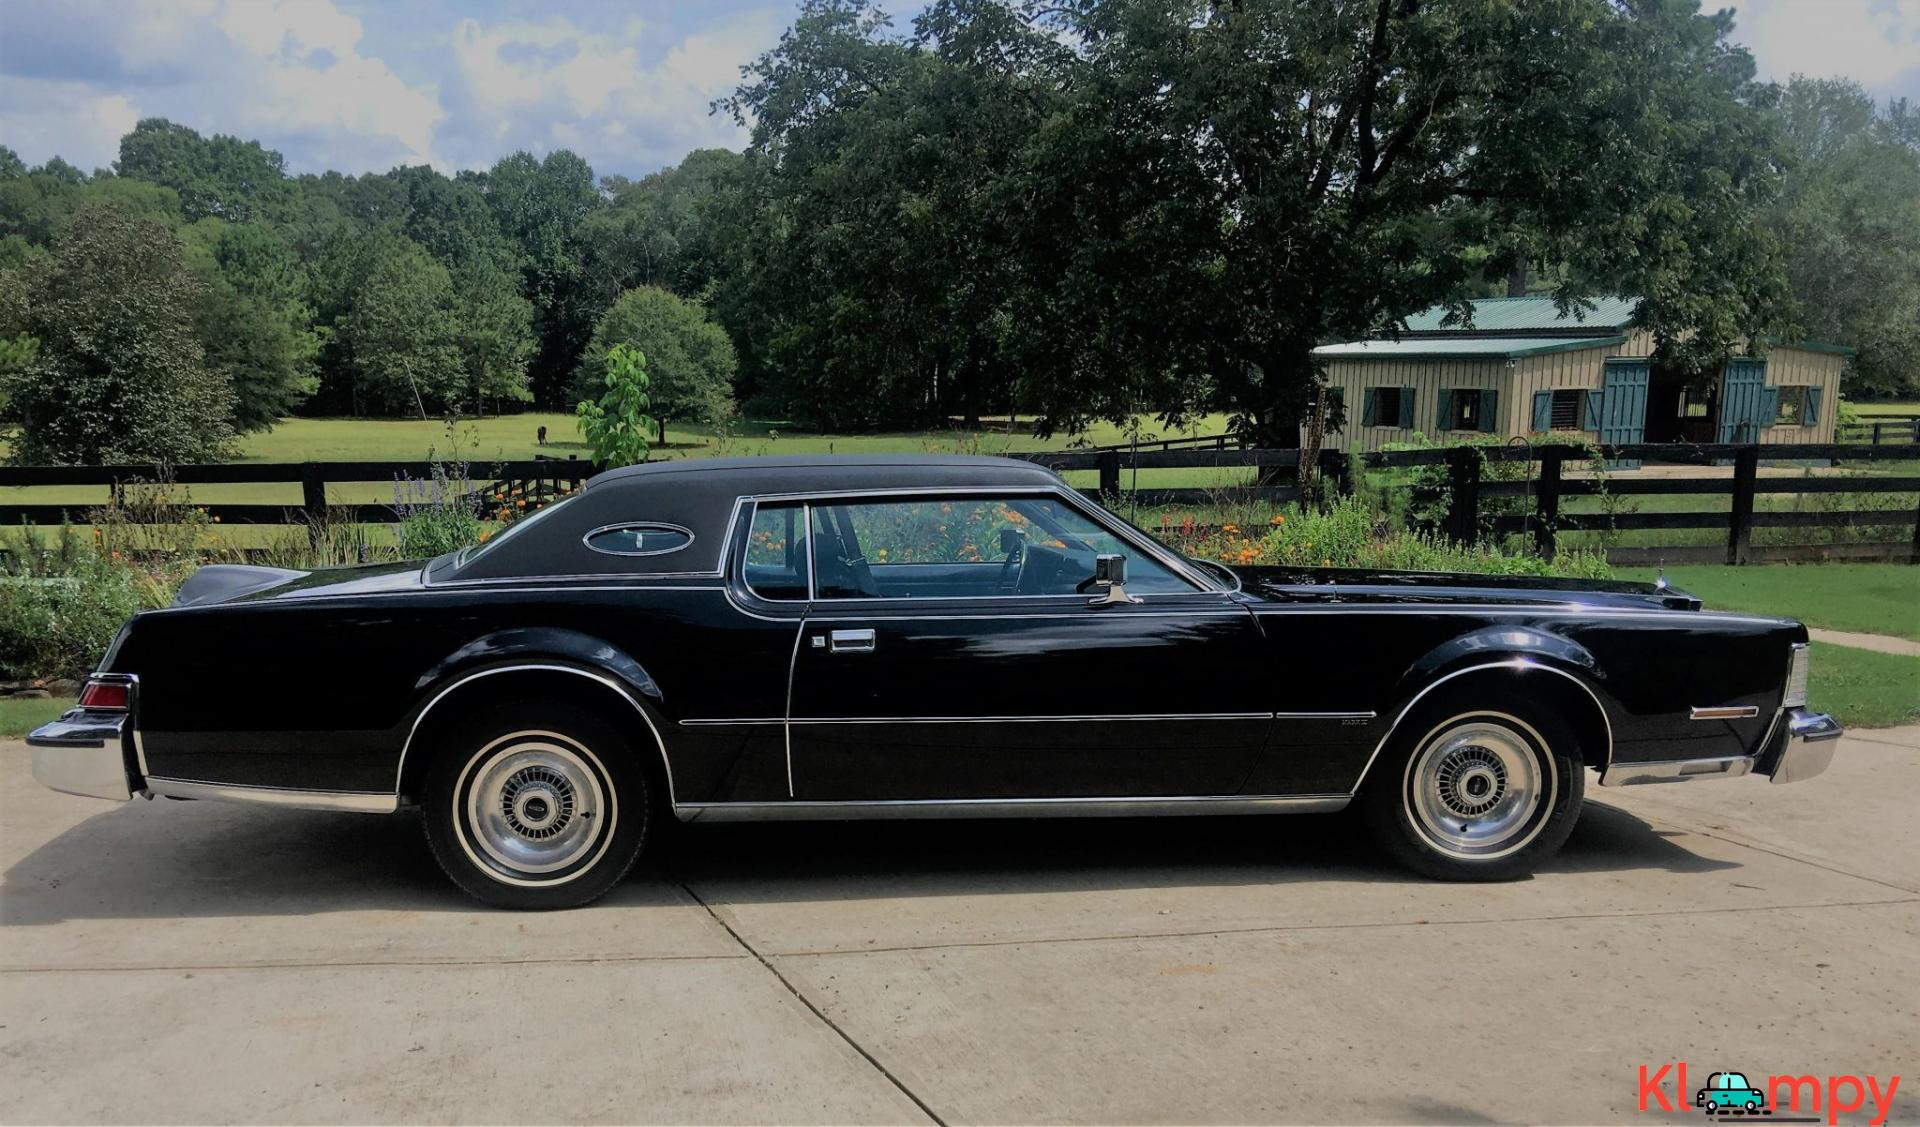 1974 Lincoln Continental Mark IV Coupe V8 - 9/20